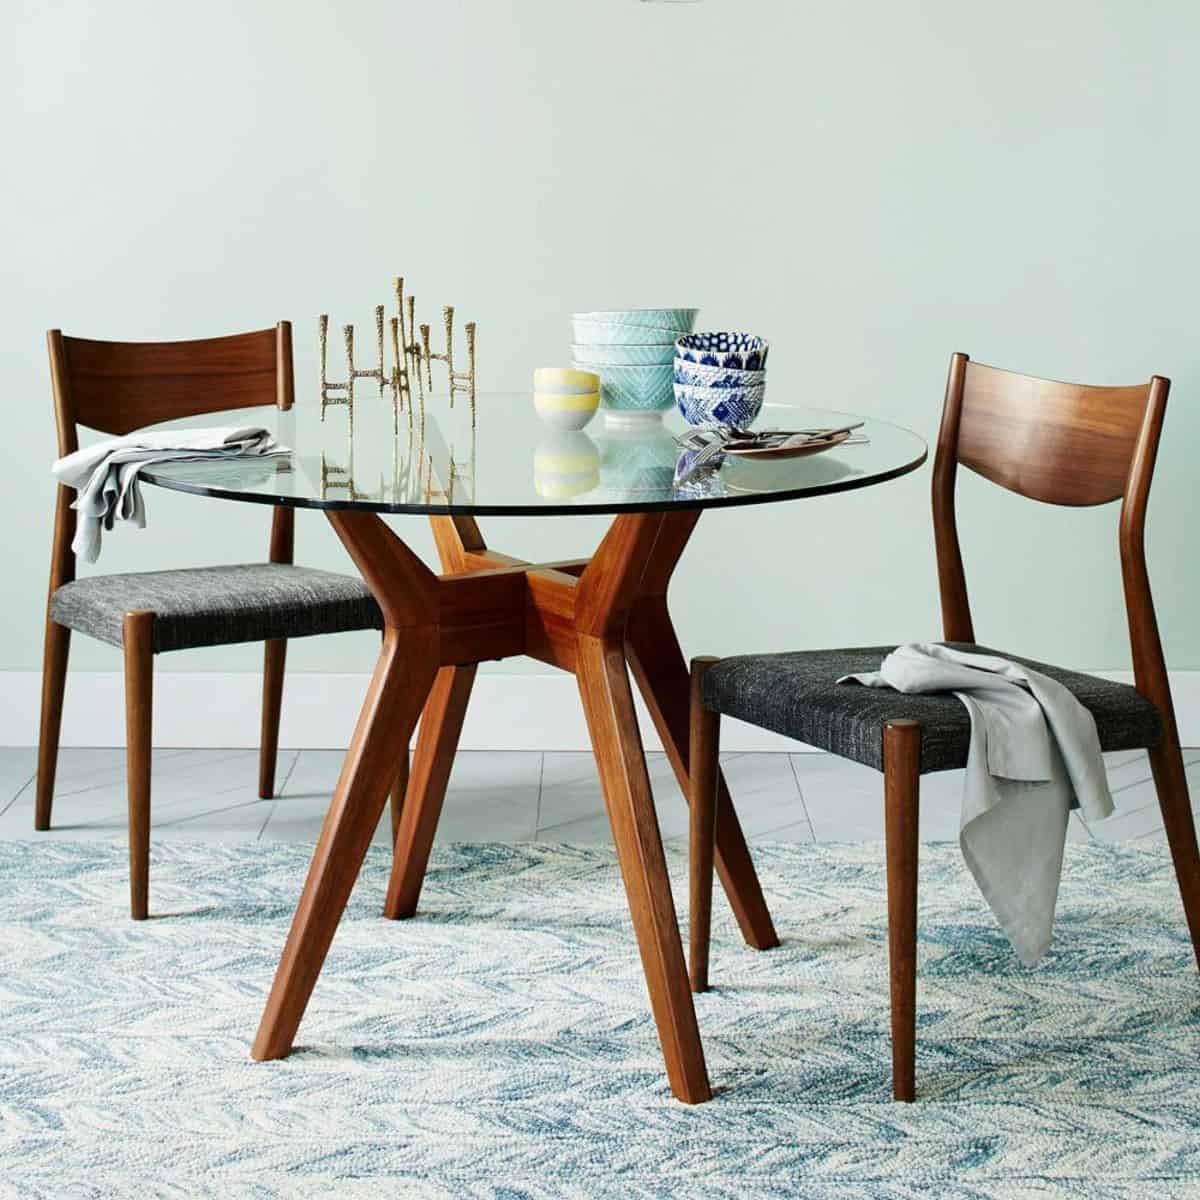 Glass Dining Table Set: 15 Round Glass Dining Room Tables That Add Sophistication